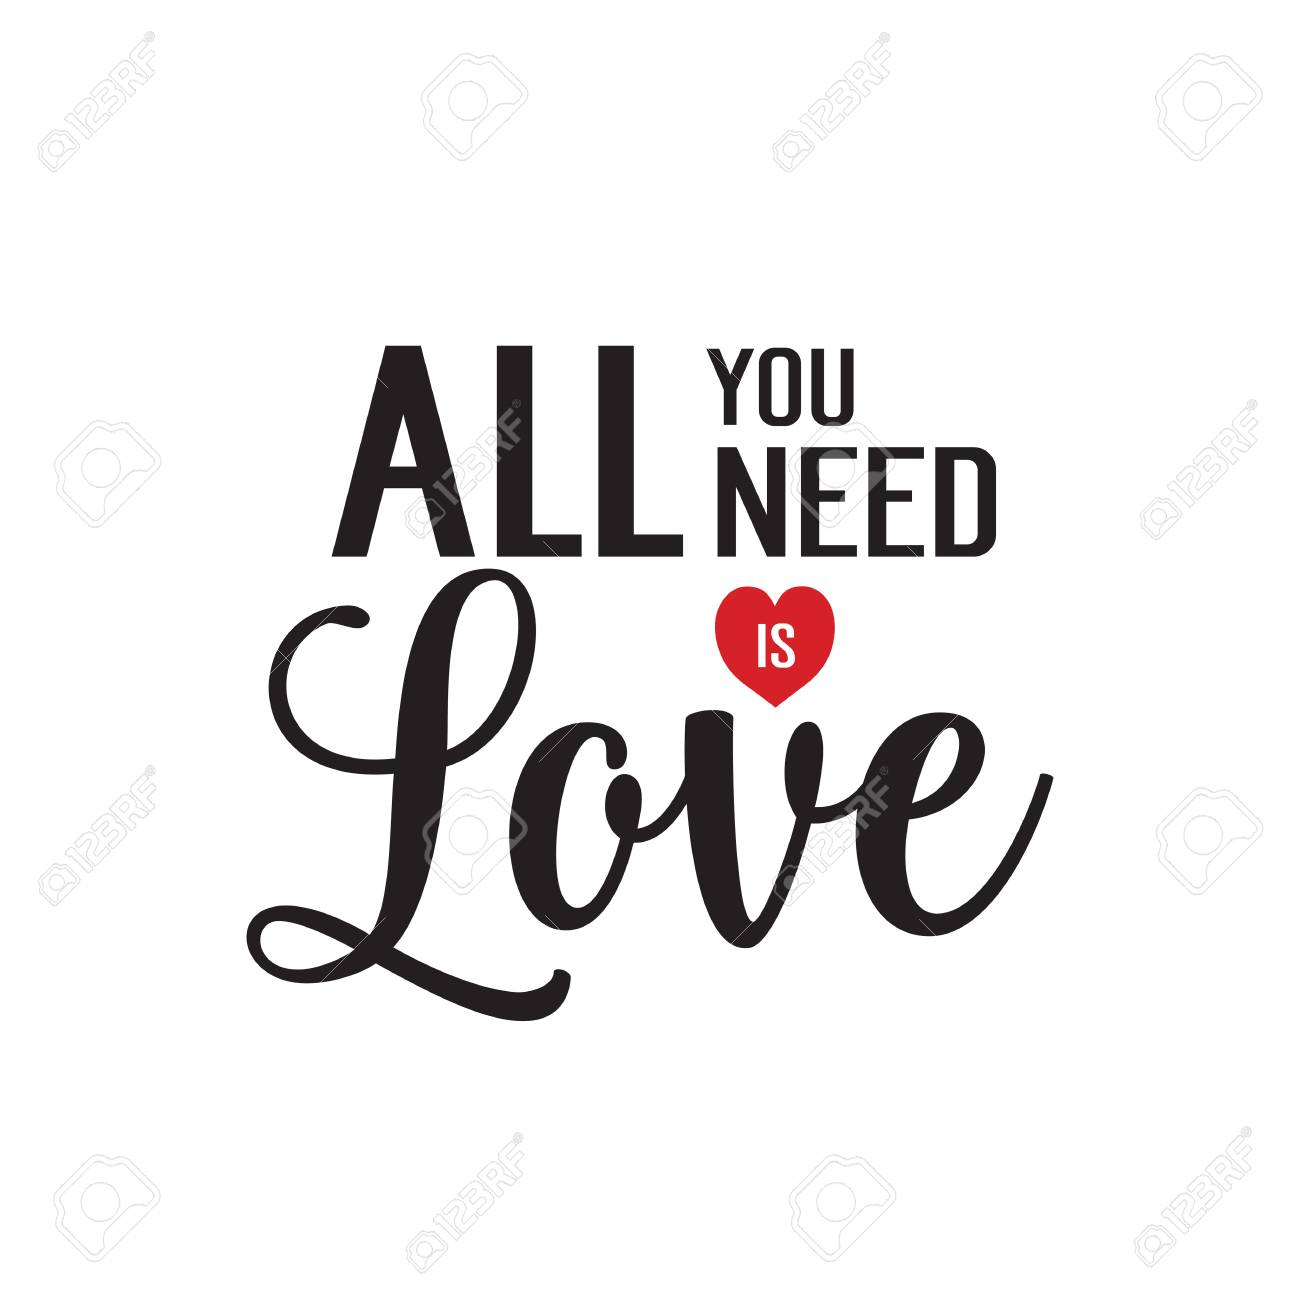 All you need is love lettering.